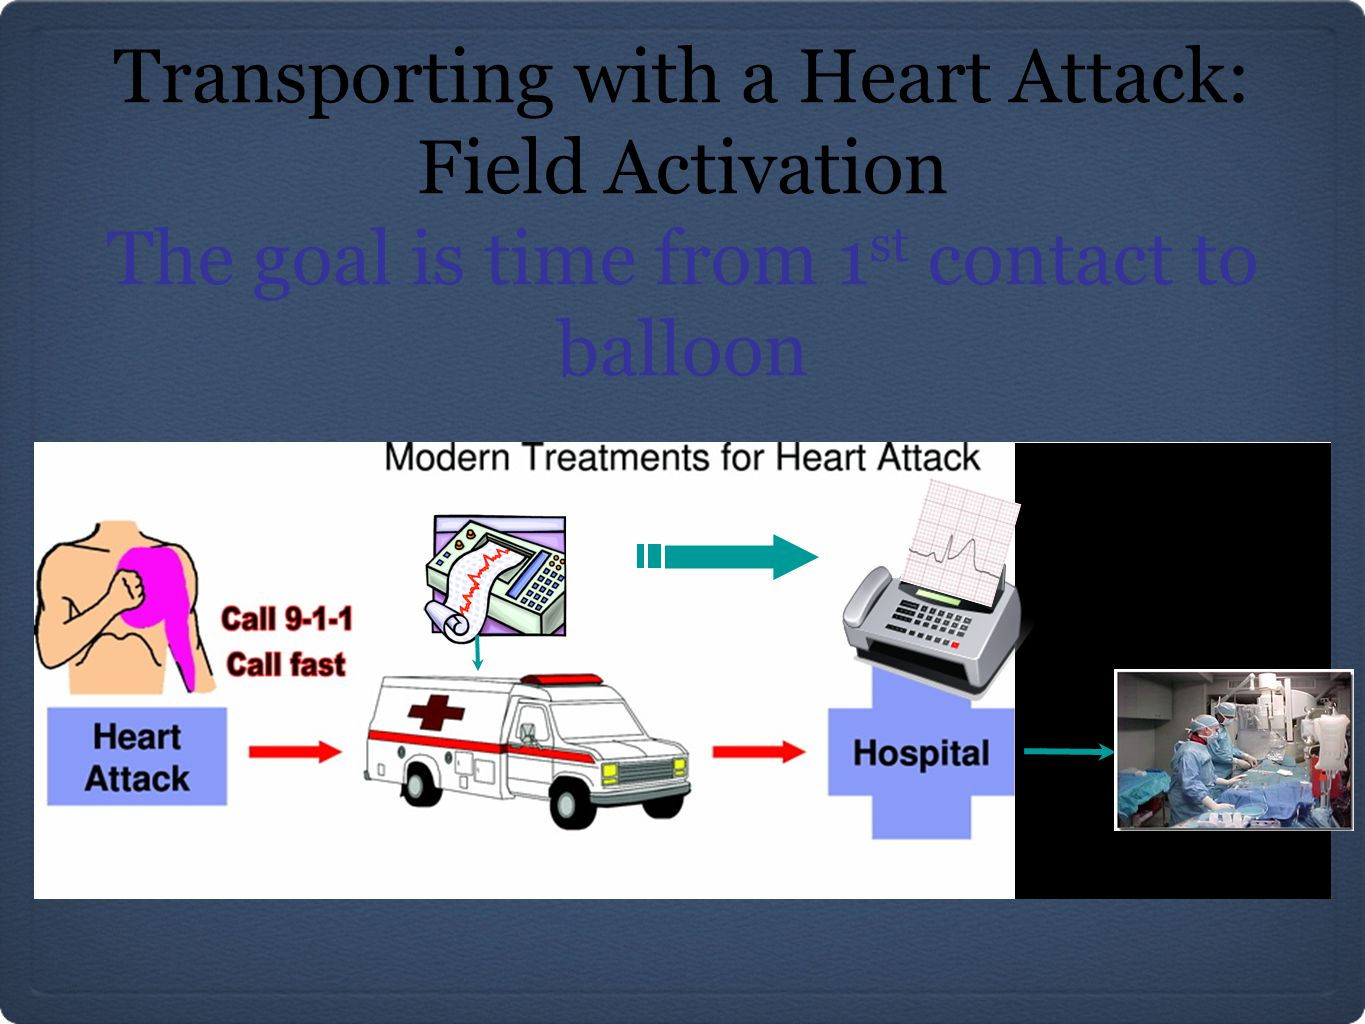 Transporting with a Heart Attack: Field Activation The goal is time from 1 st contact to balloon